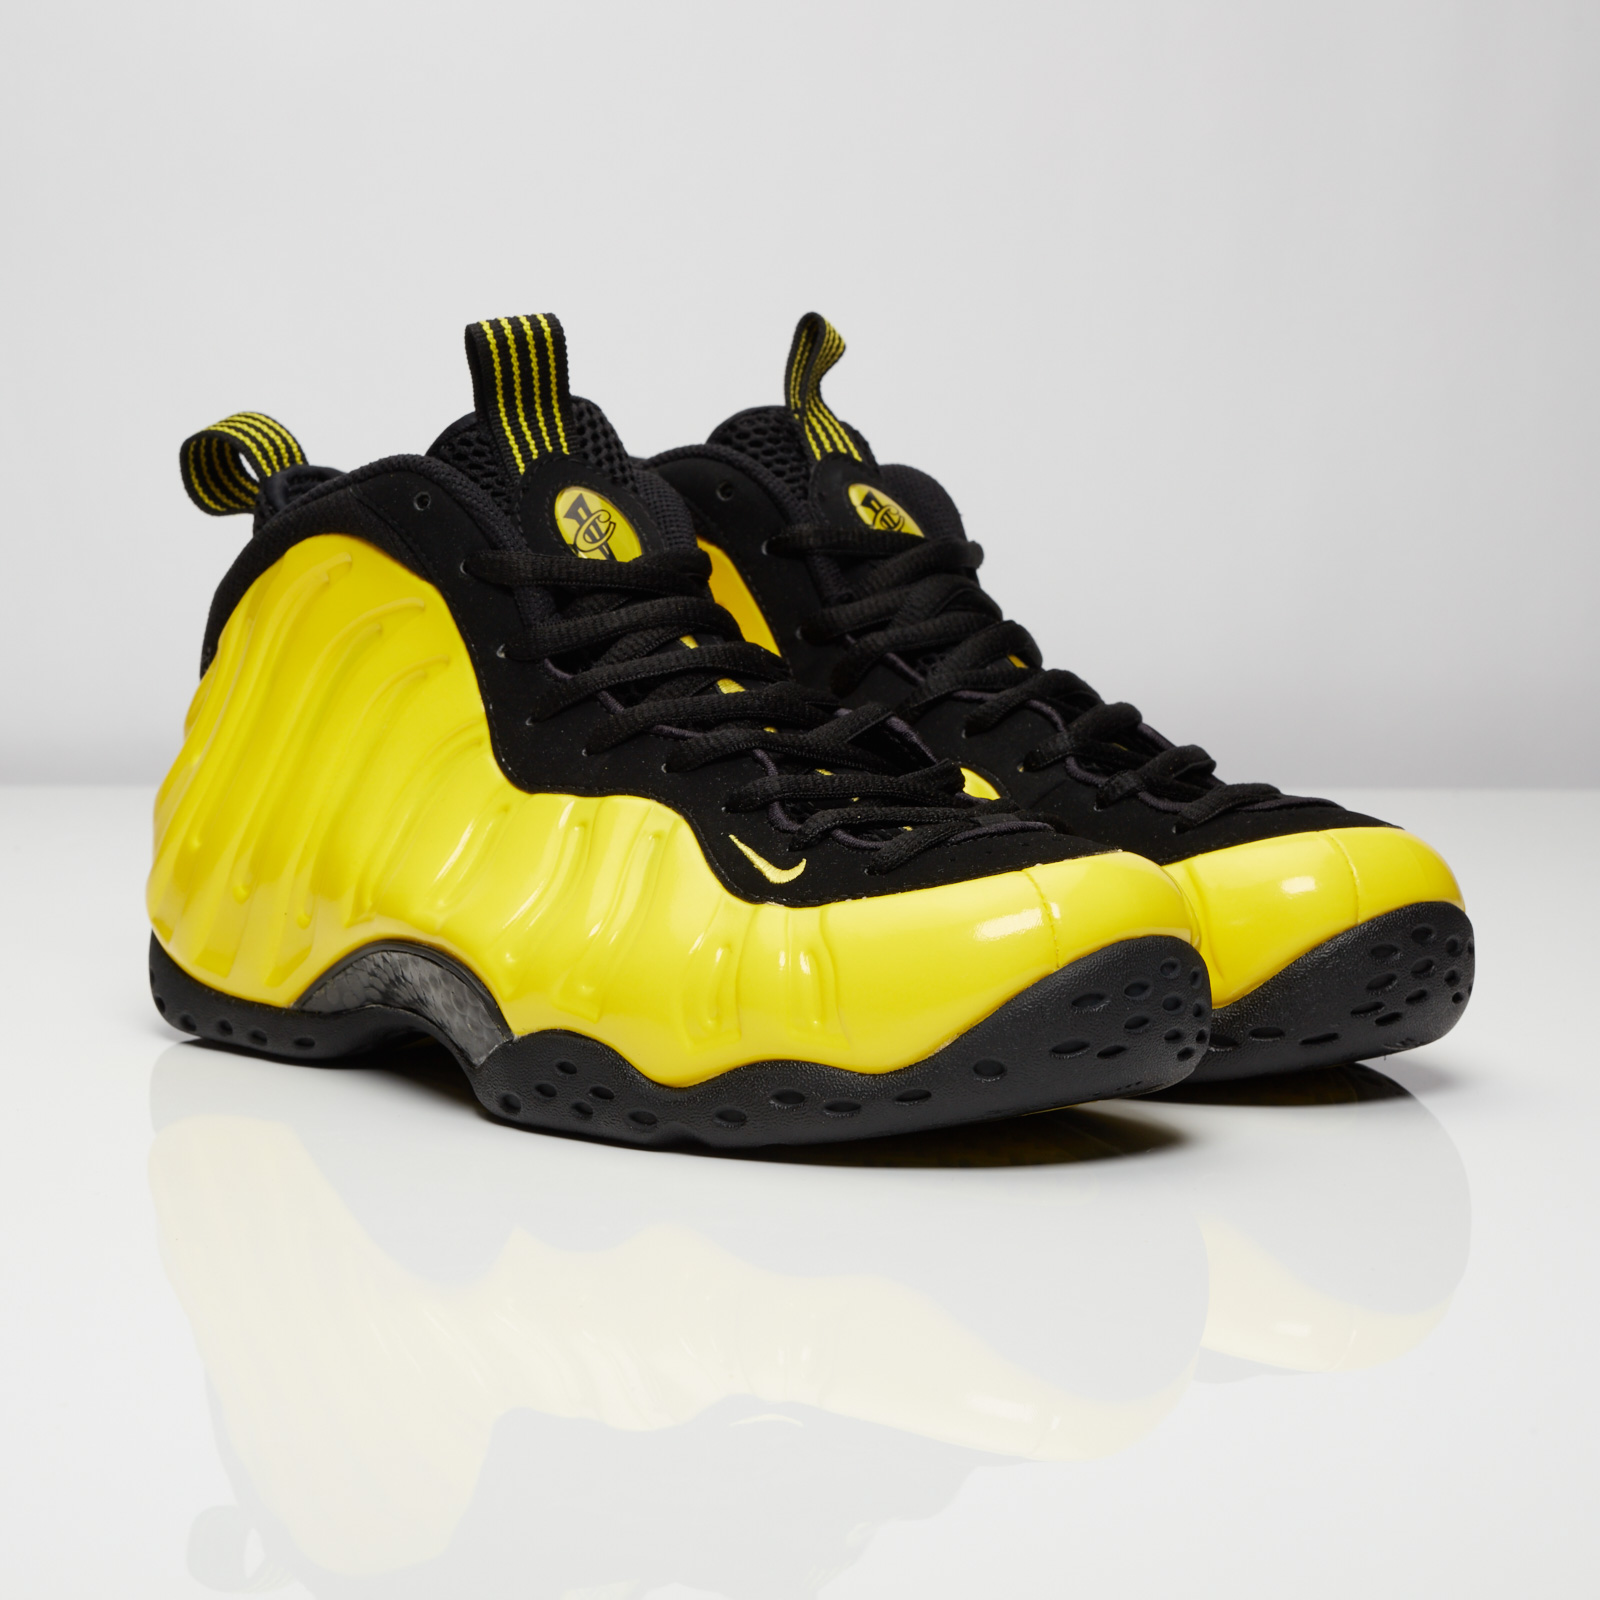 Nike Air Foamposite Unisex